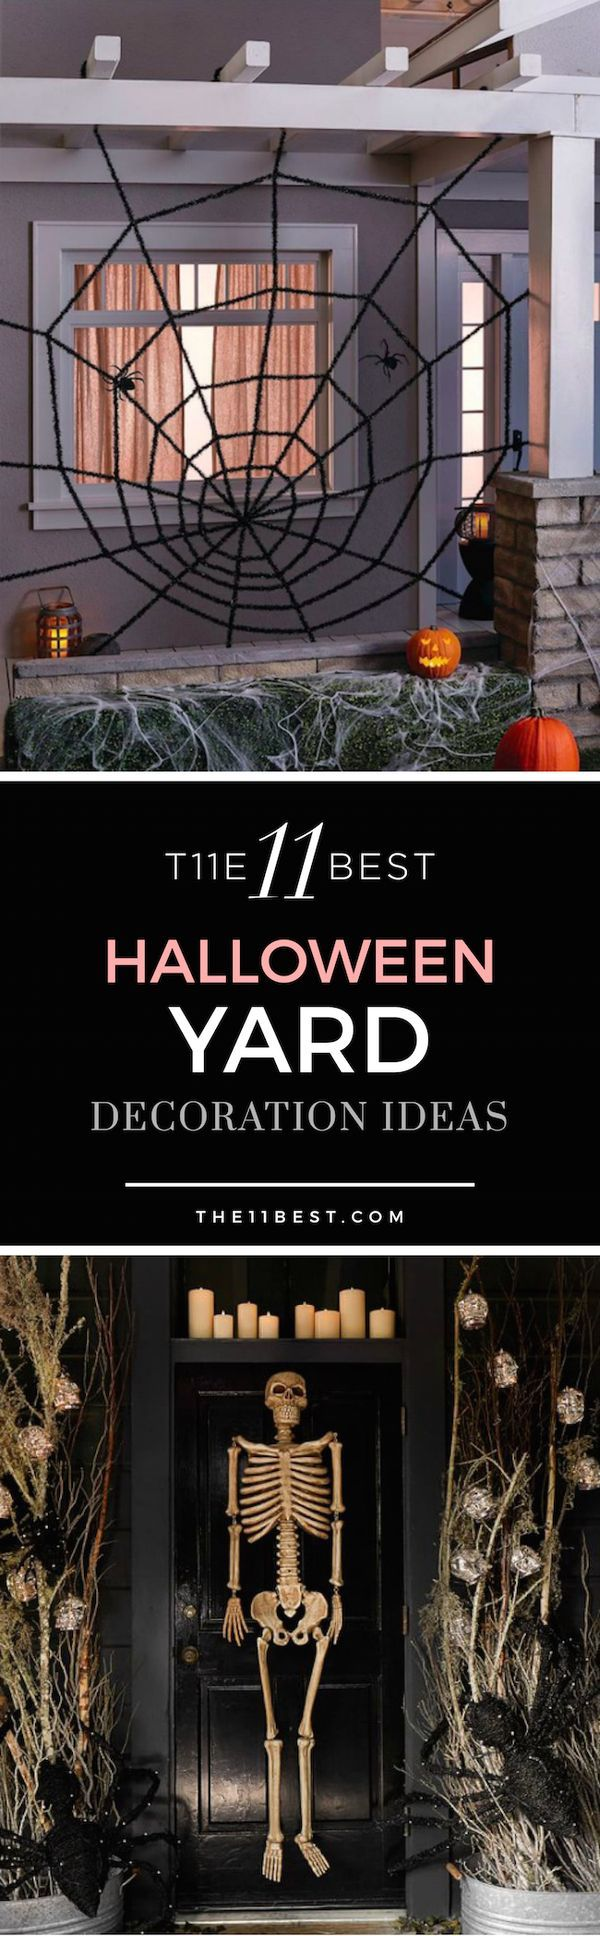 Spooky halloween yard decorations - Find This Pin And More On Halloween The 11 Best Spooky Halloween Yard Decor Ideas